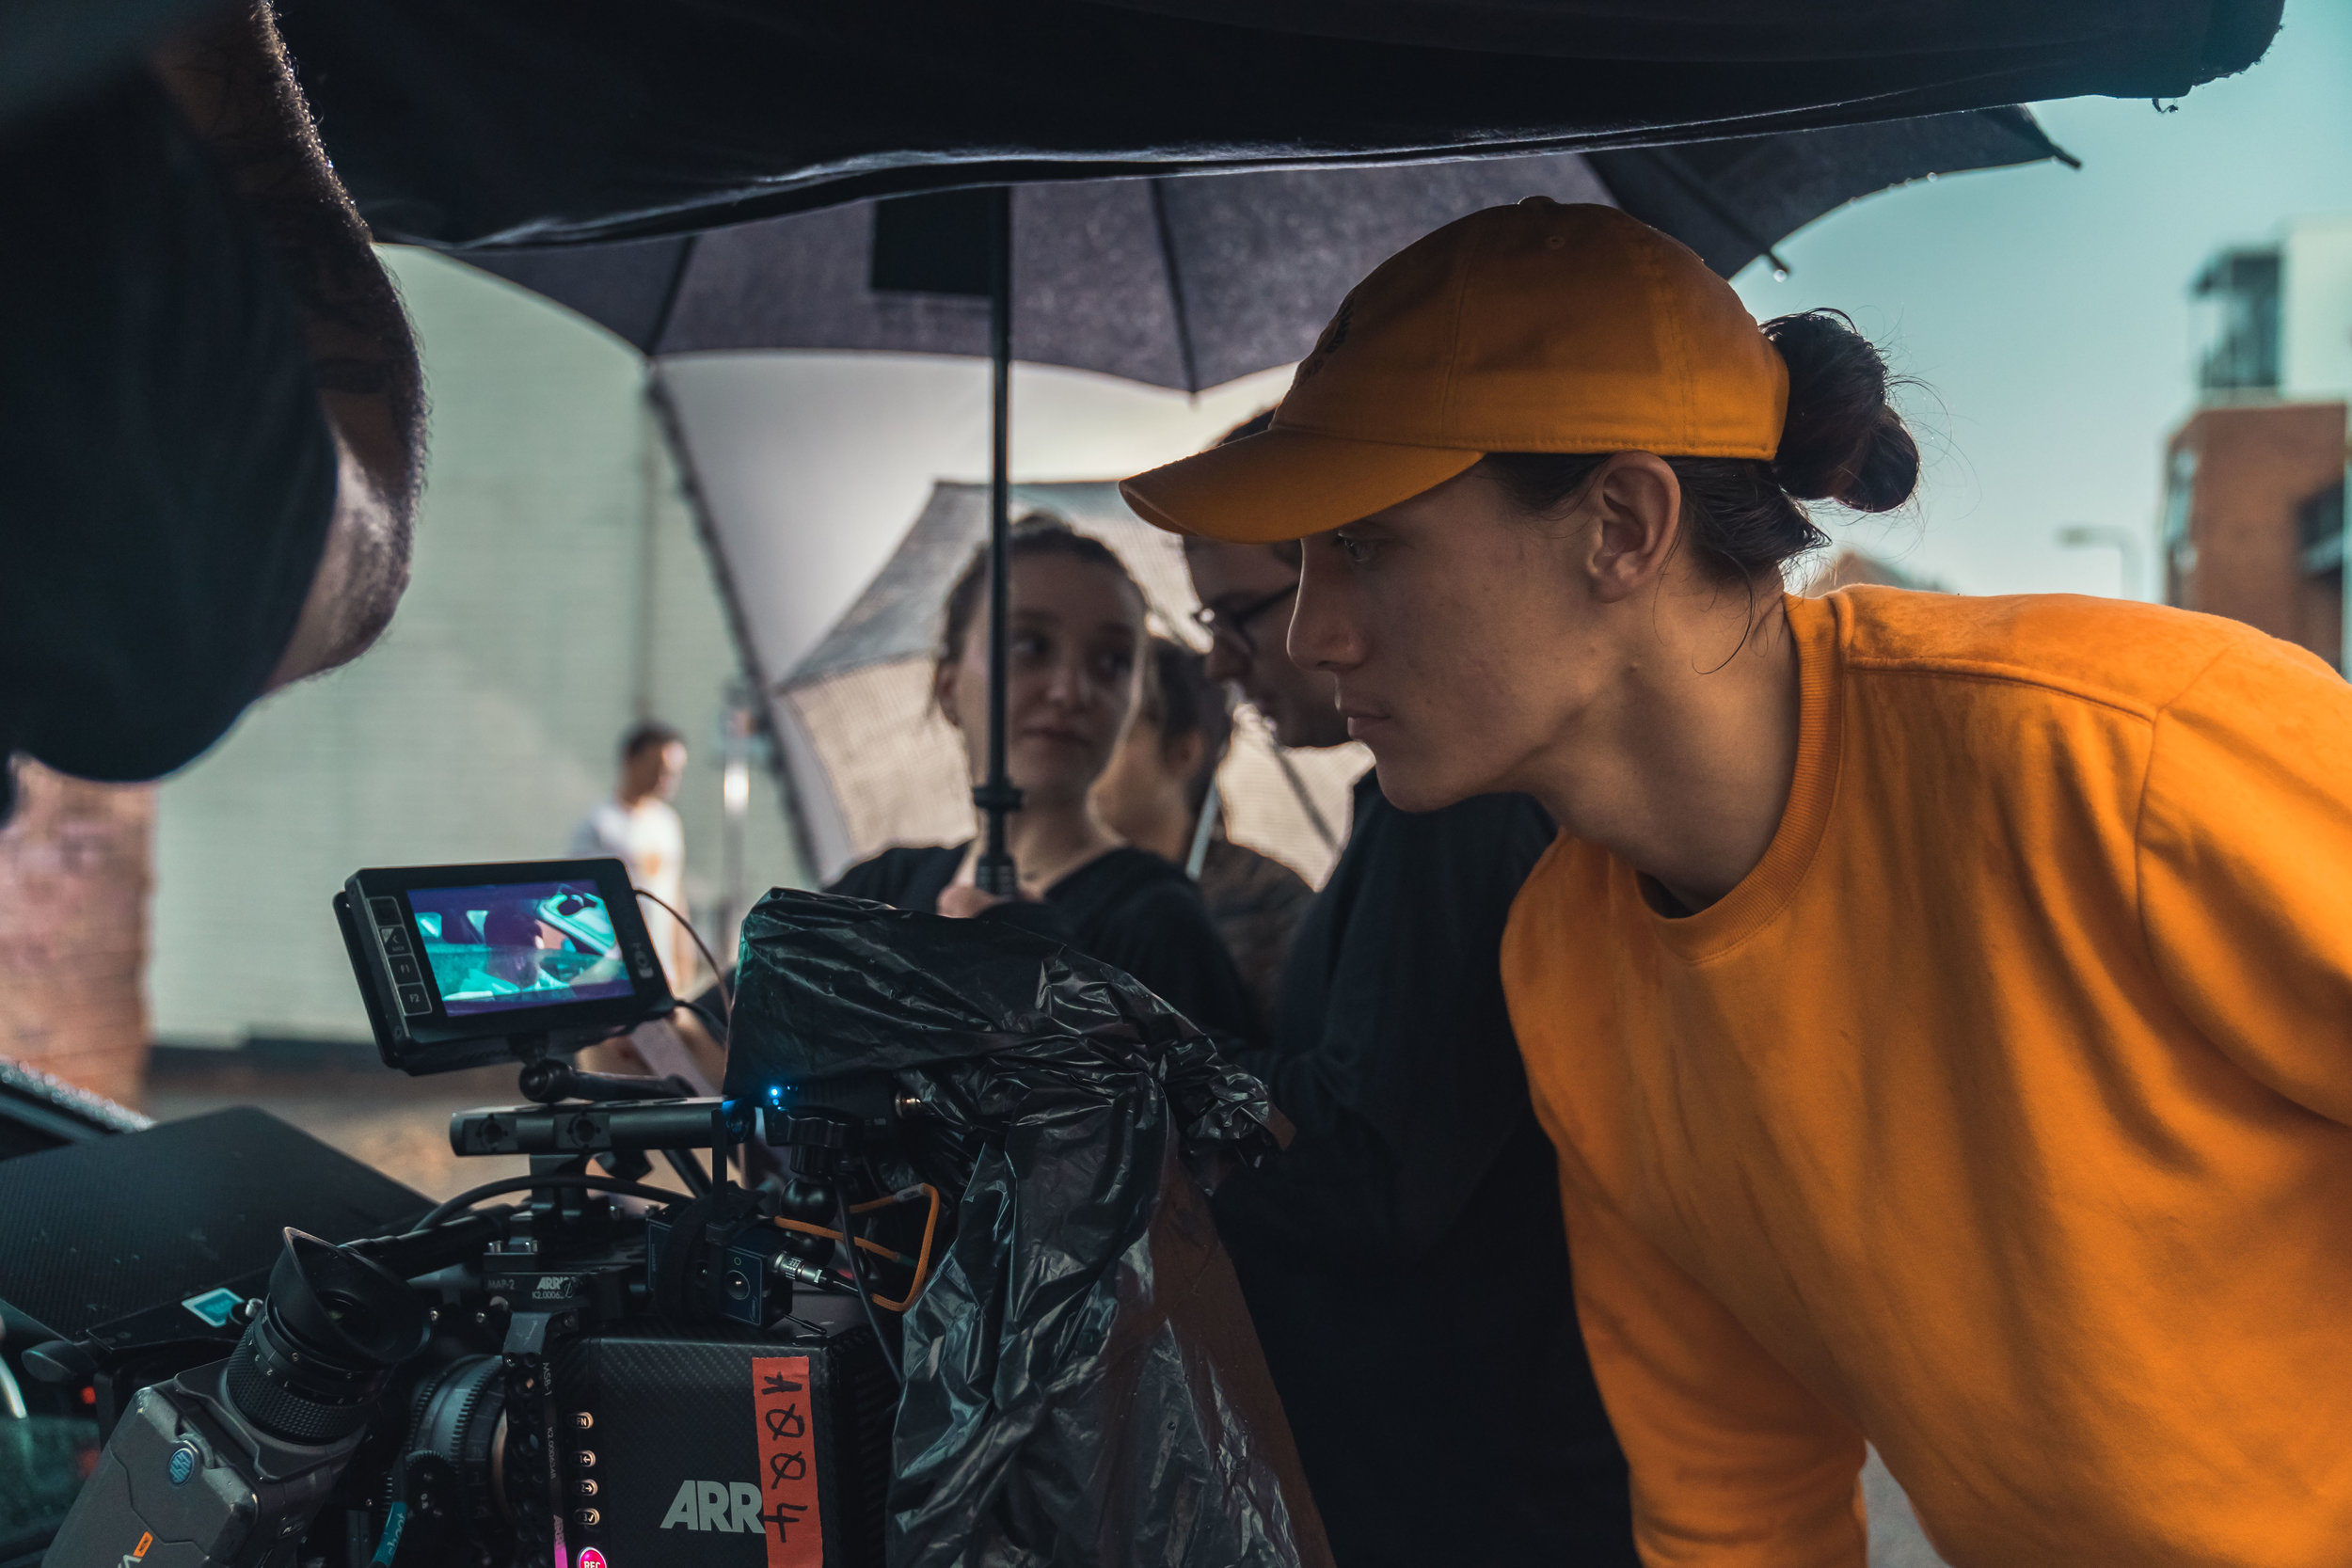 Behind the scenes of Stationary. Director Louis Chan, who has his brown hair in a bun and wears a matching orange sweatshirt and baseball cap, looks into the camera monitor, which is set up wrapped in plastic and under an umbrella because it is raining on set.